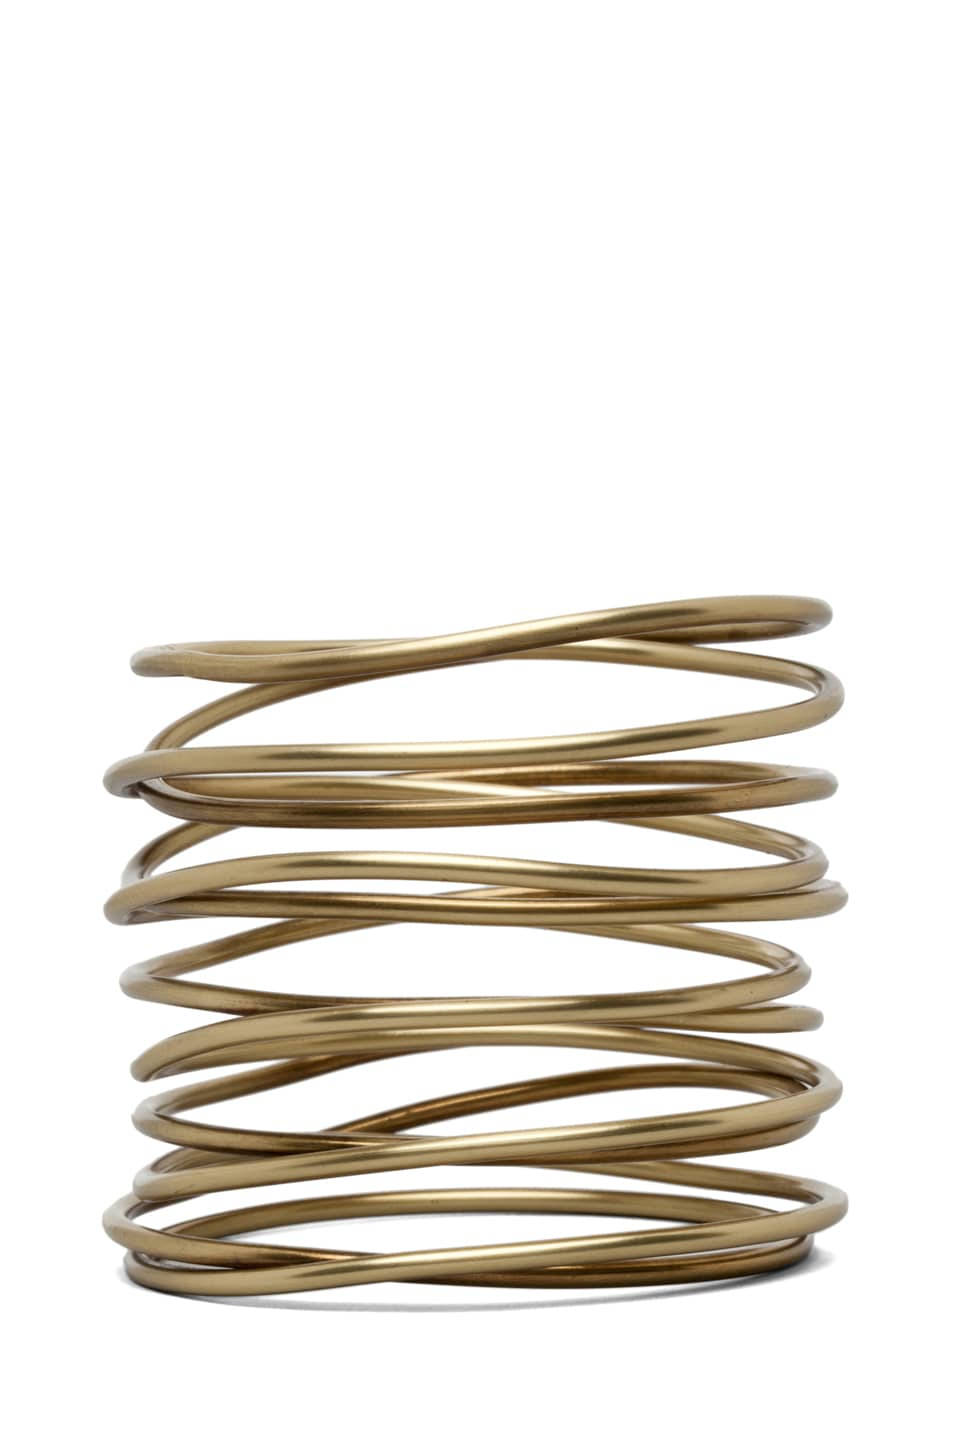 Image 2 of Kelly Wearstler Twisted Bracelet in Brass